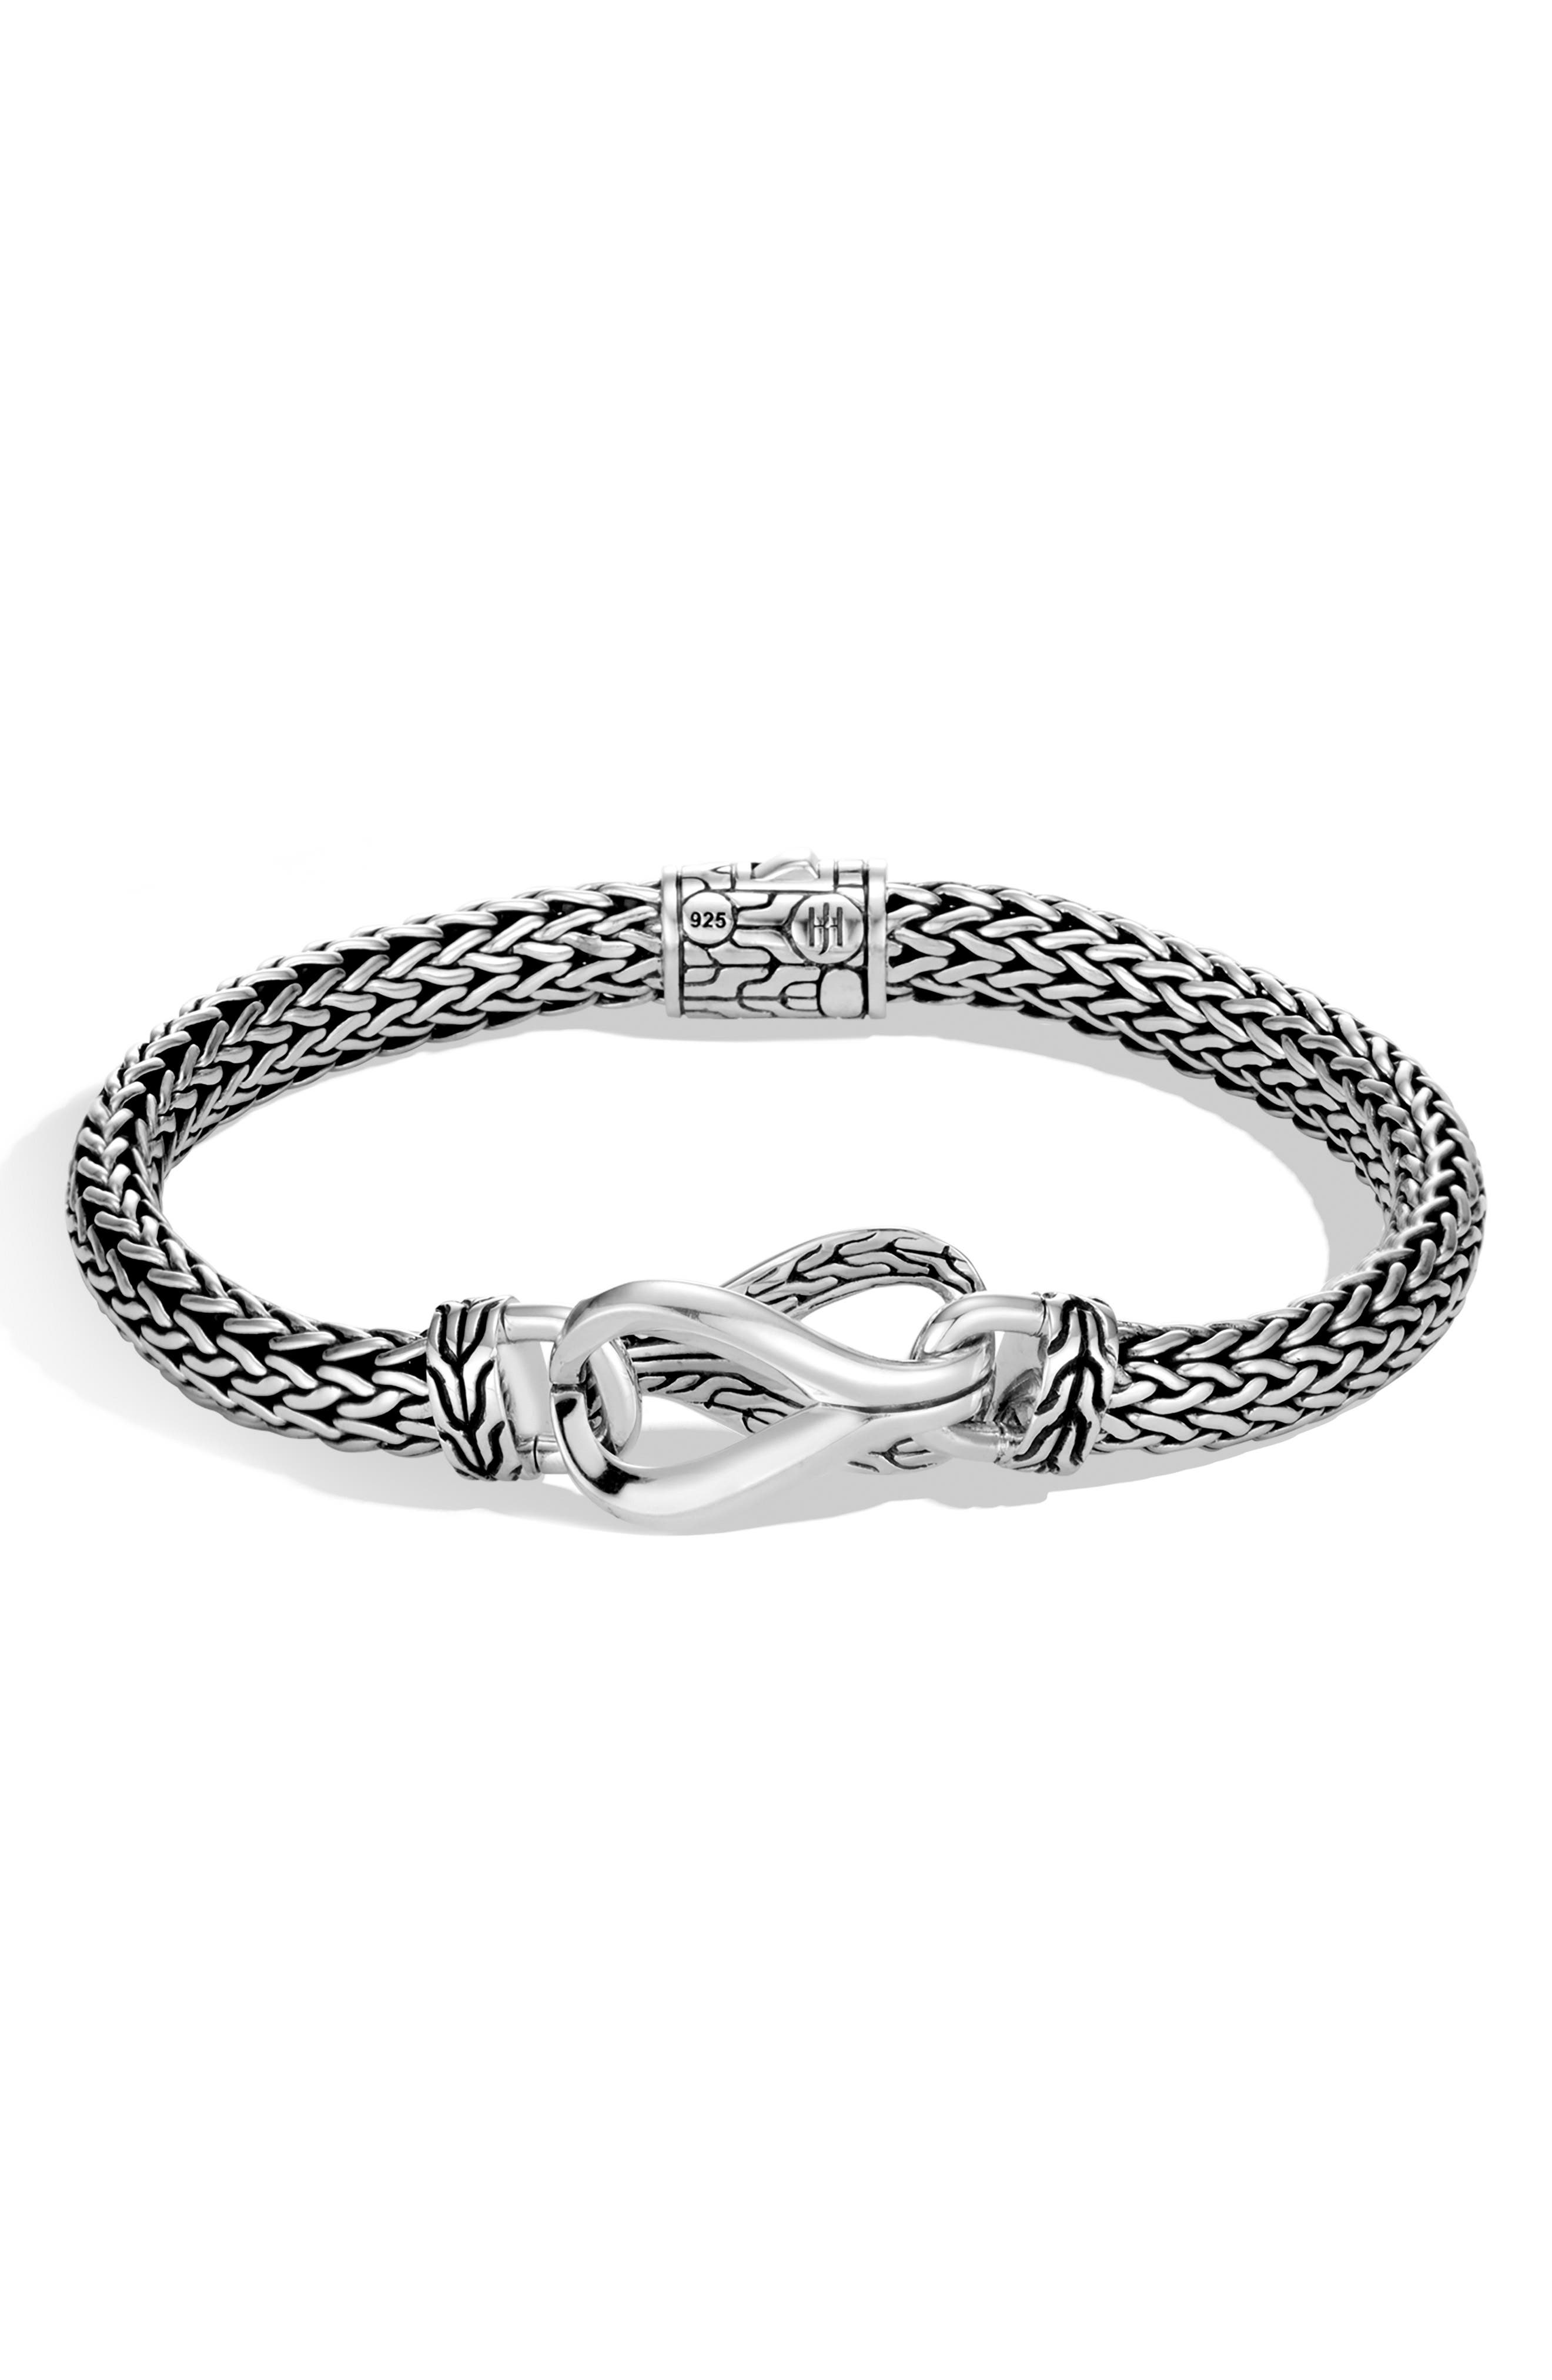 JOHN HARDY Small Asli Chain 6.5mm Bracelet, Main, color, SILVER